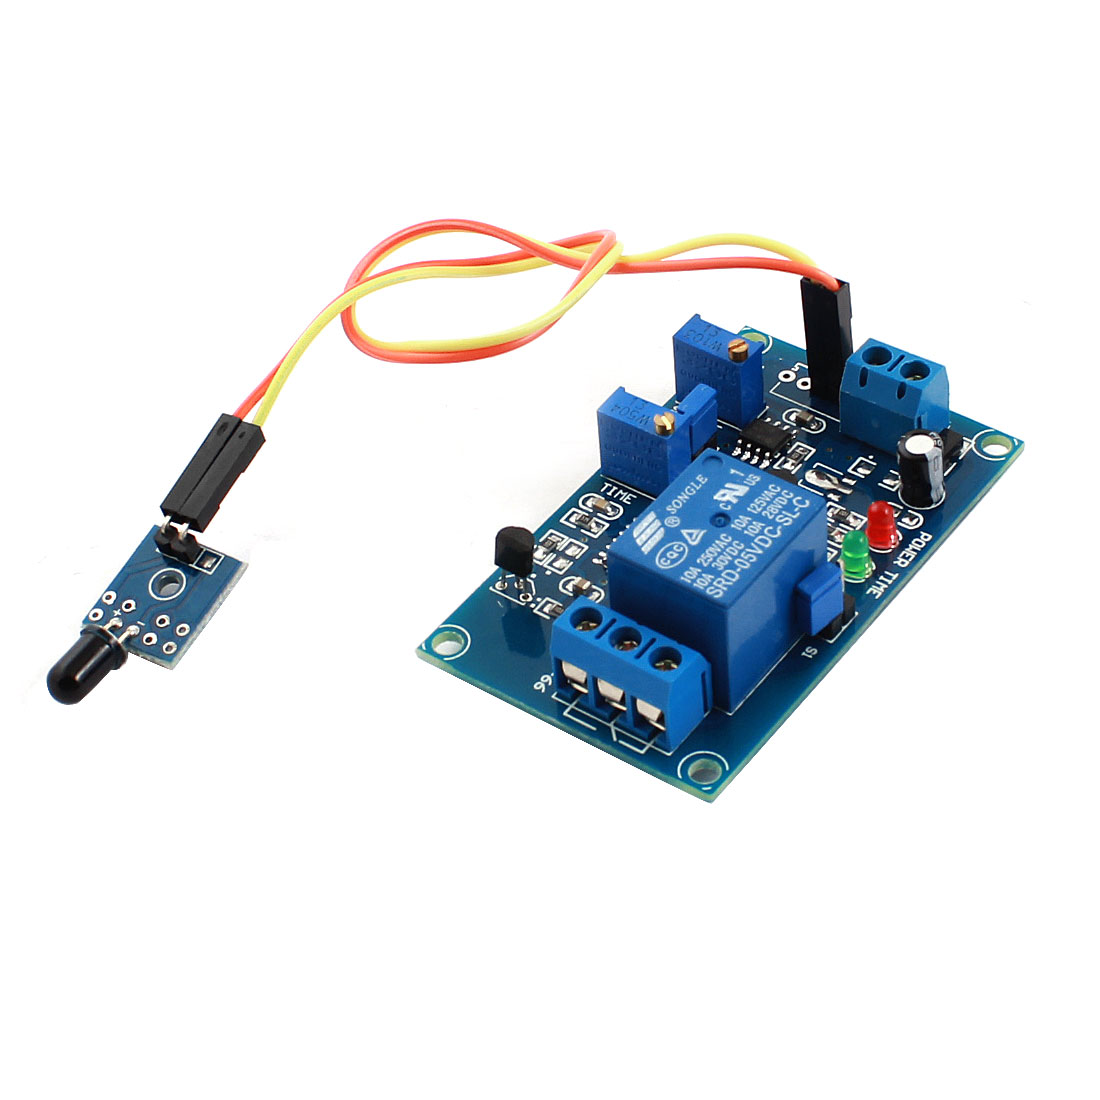 DC5V 1 Channel Flame Sensor Infrared Reciever Time Delay Non-infrared Trigger Relay PCB Board Module